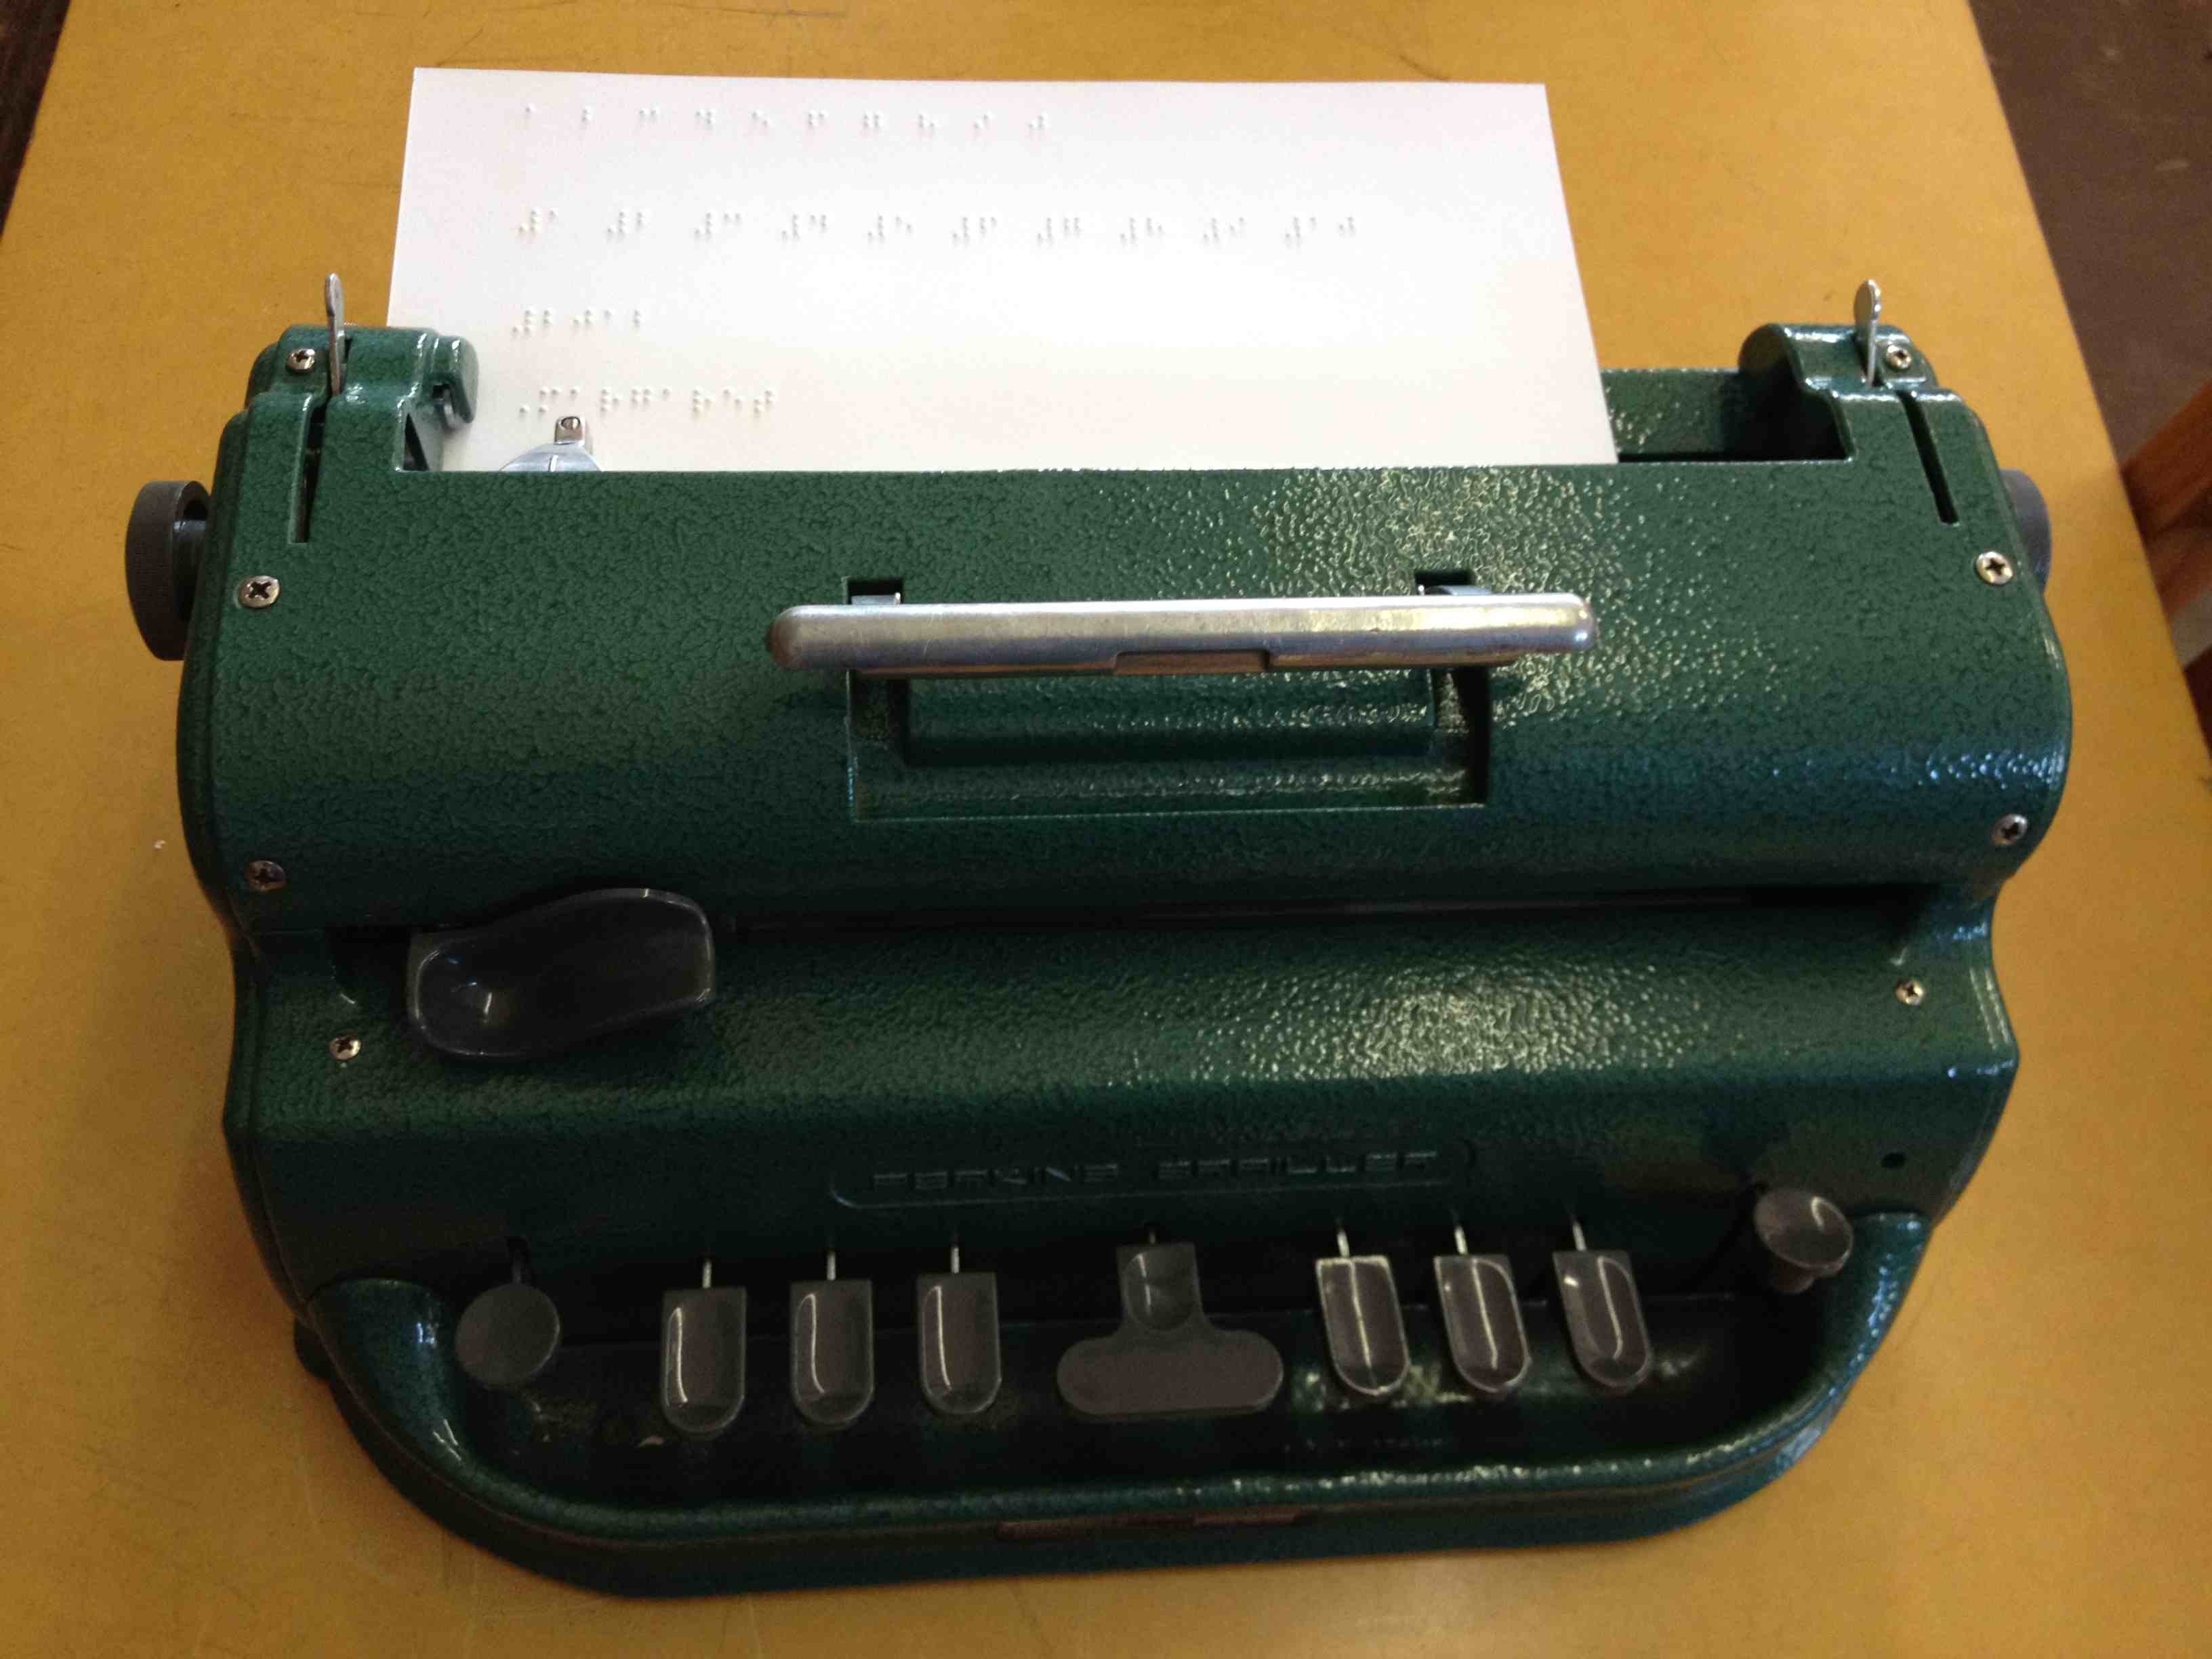 Braille typewriter used at the SIbonile School for Visually Impaired